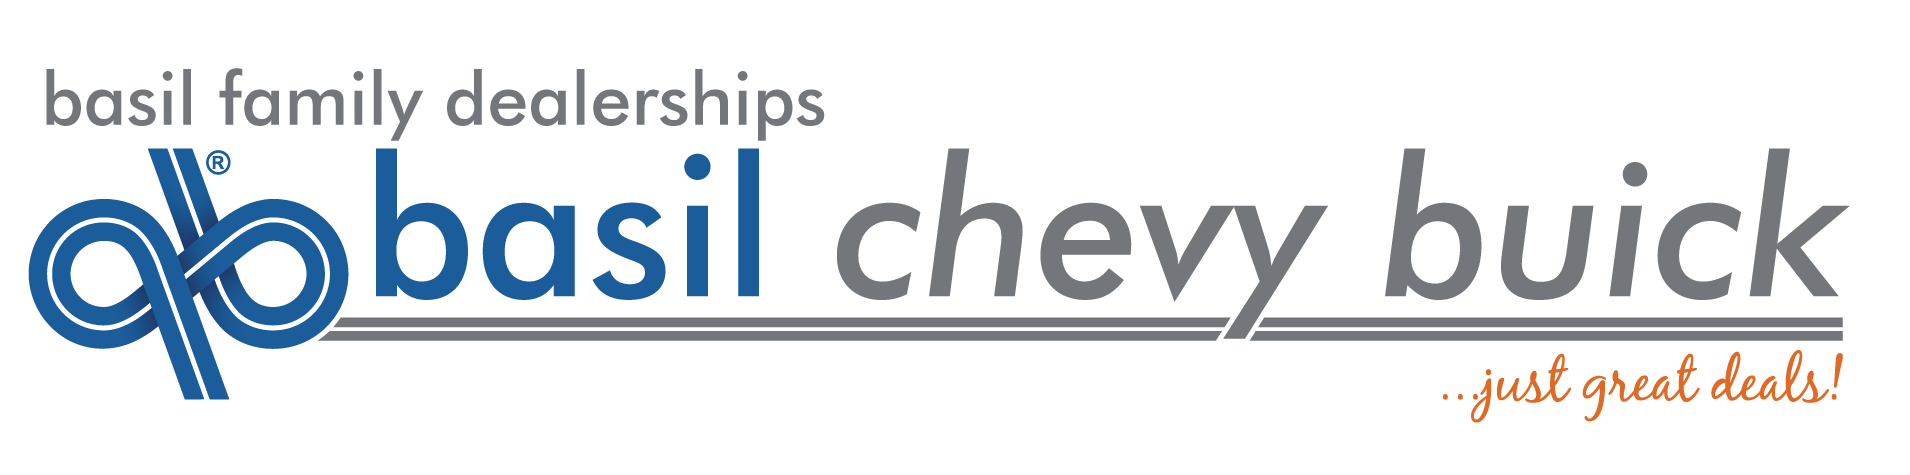 bfr-new-chevbuick-logo